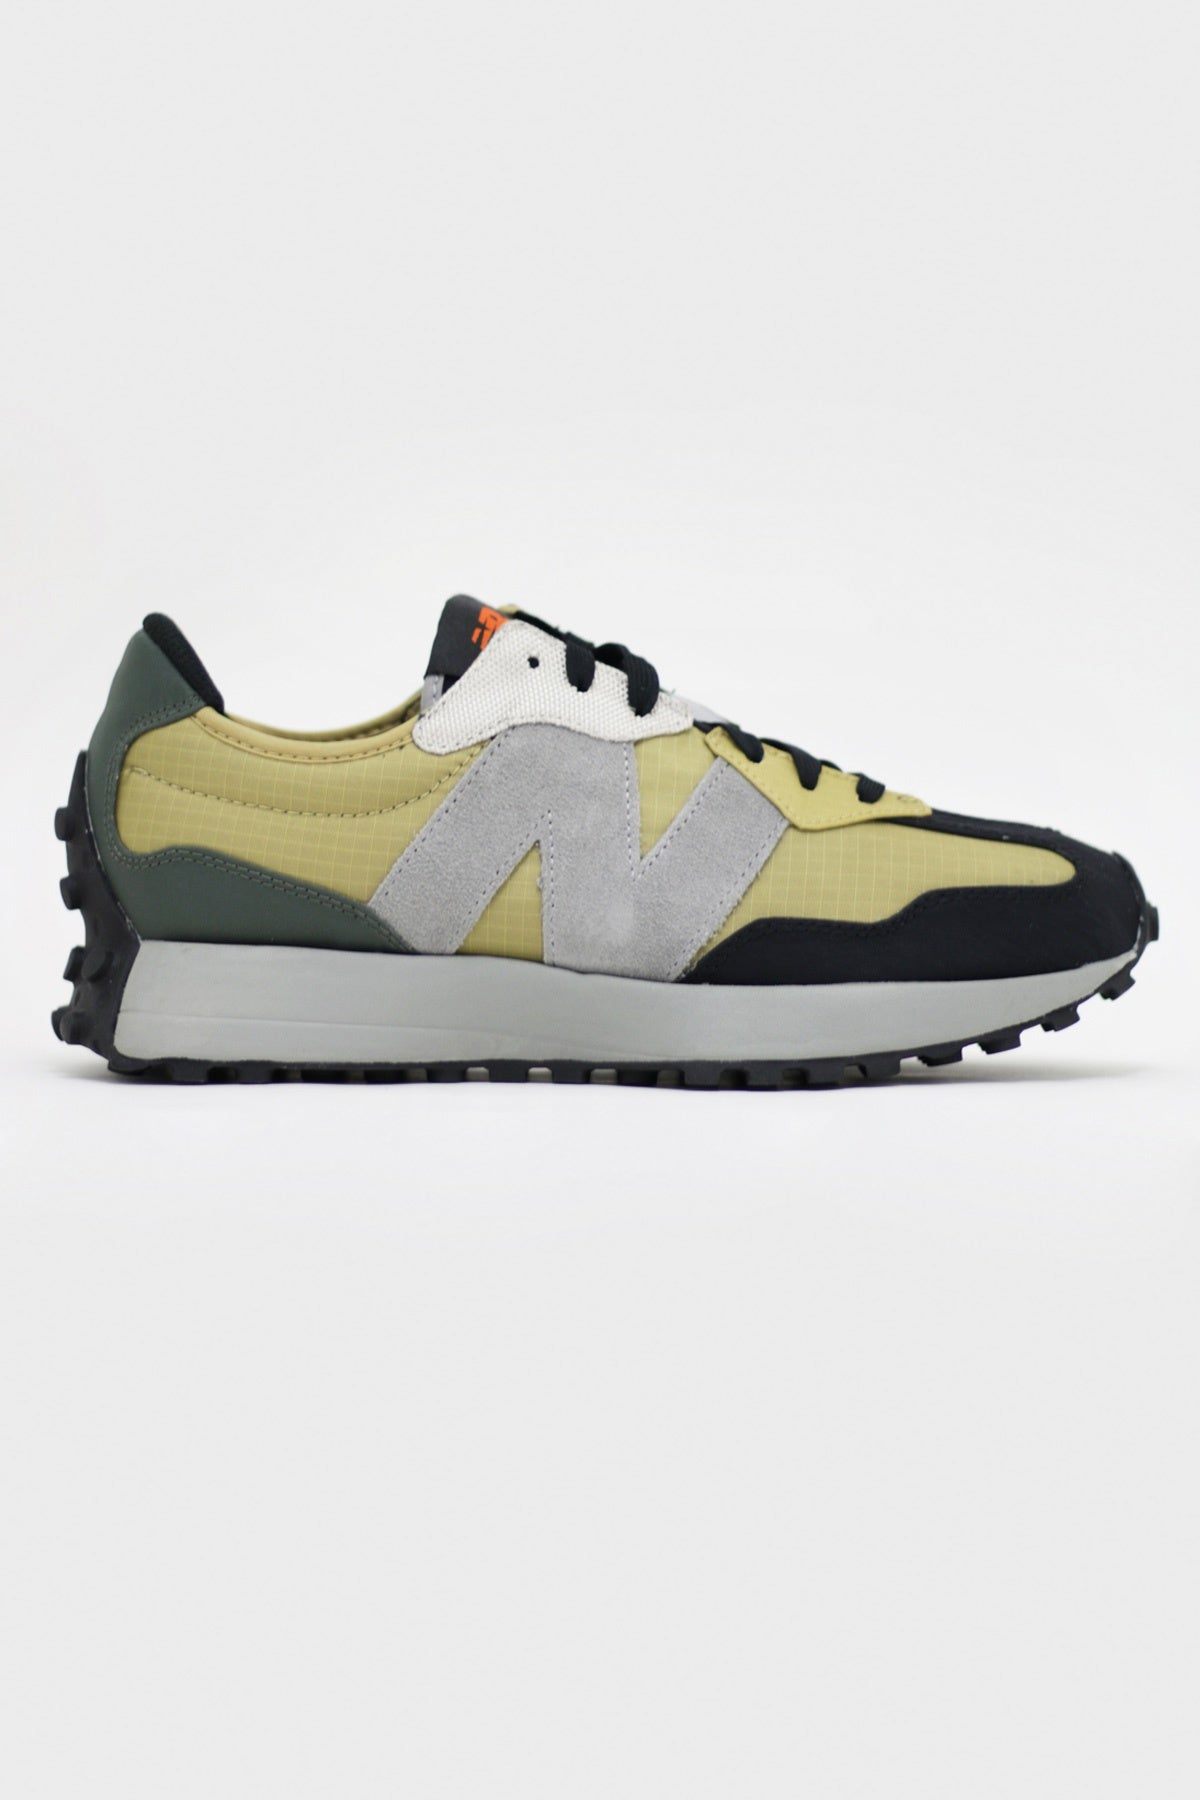 New Balance - 327 - Byzantine Gold/Golden Poppy - Canoe Club